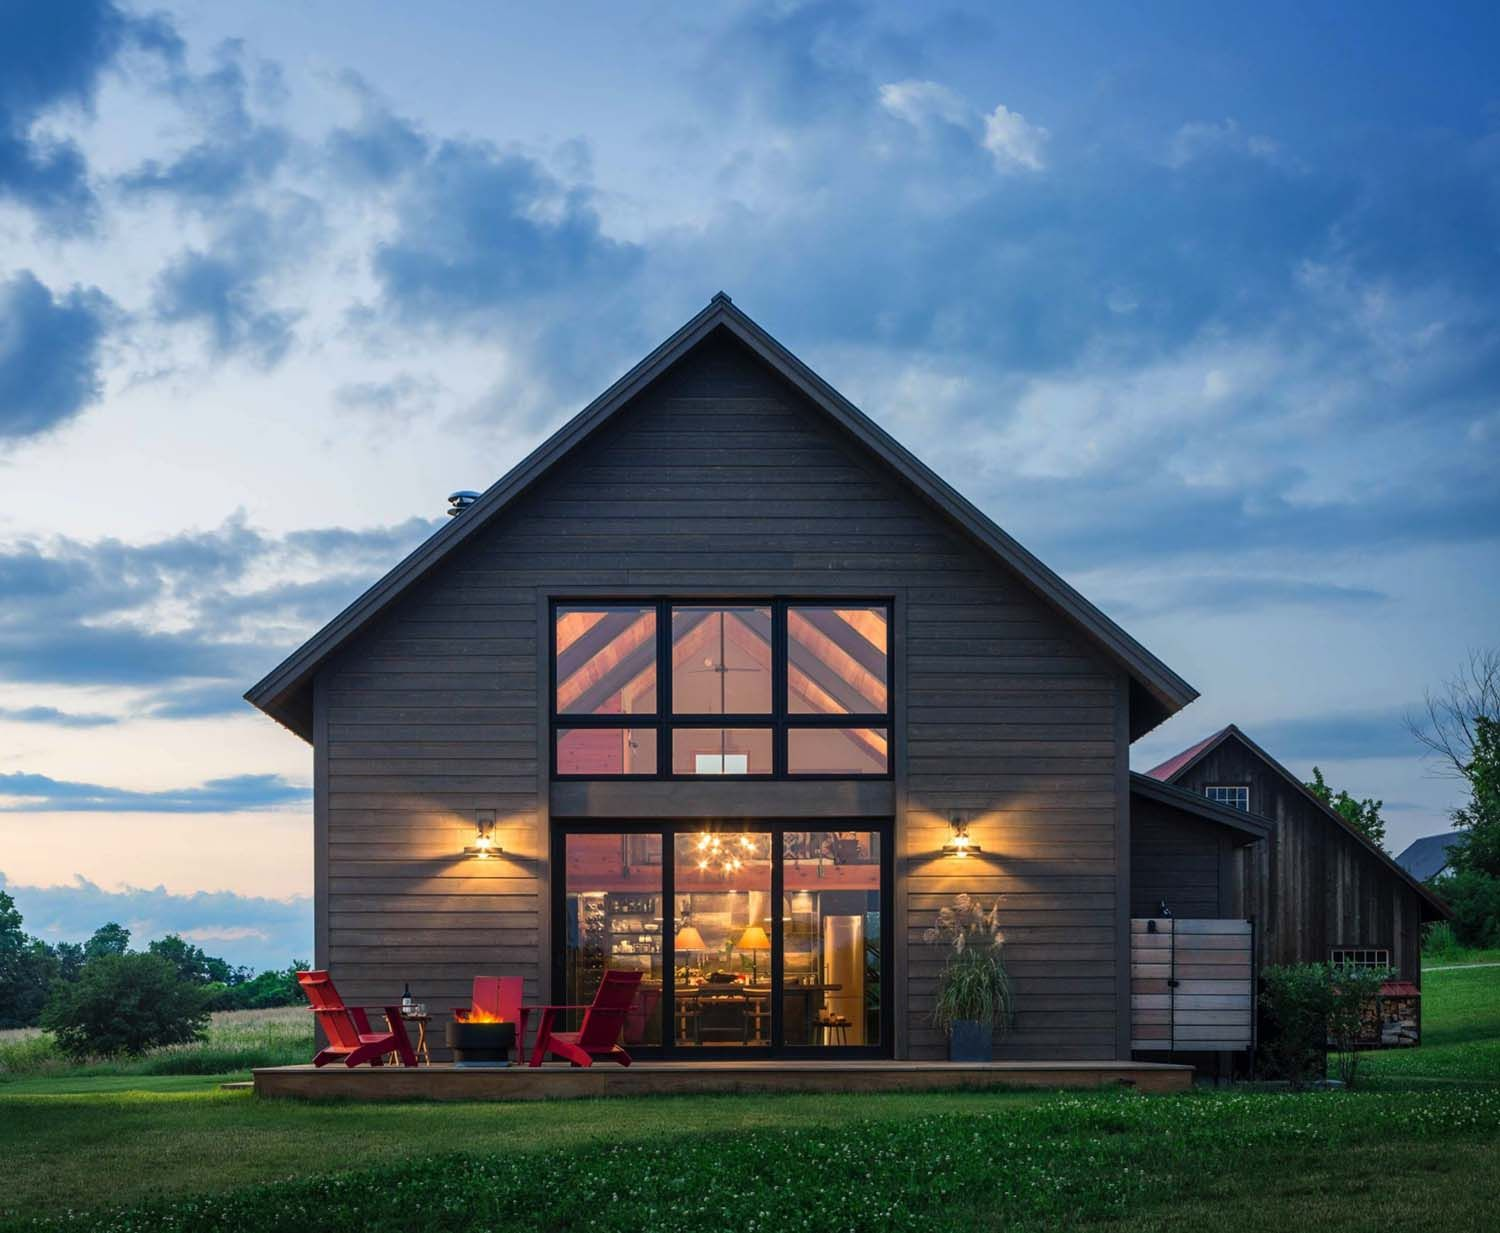 Small and cozy modern barn house getaway in Vermont | Modern House